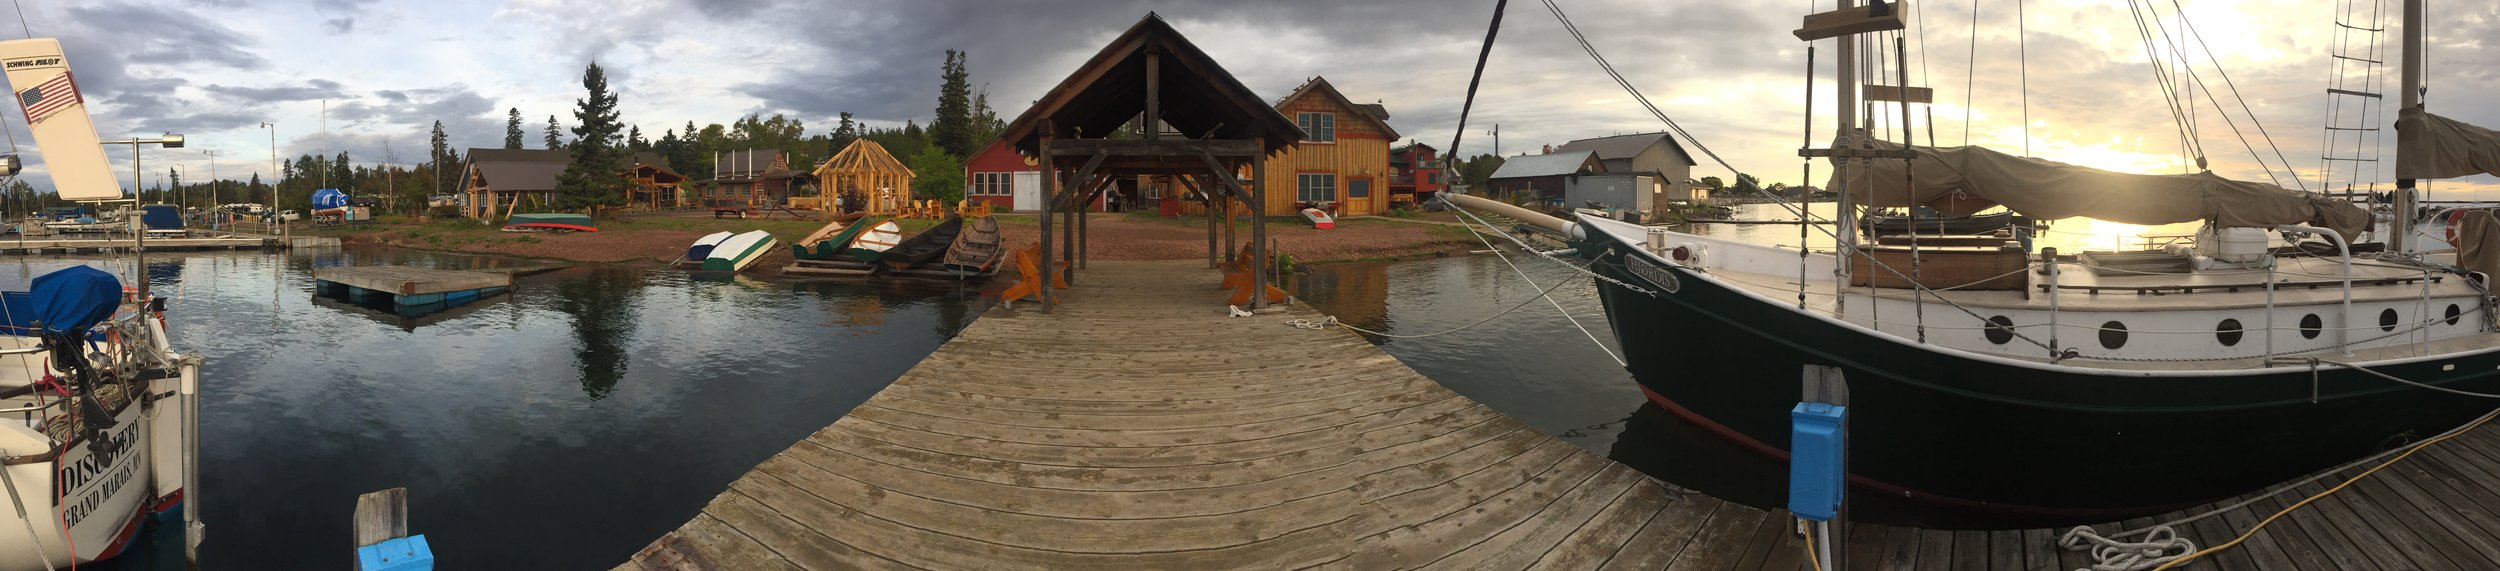 panoramic view of North House grounds from their dock, early morning